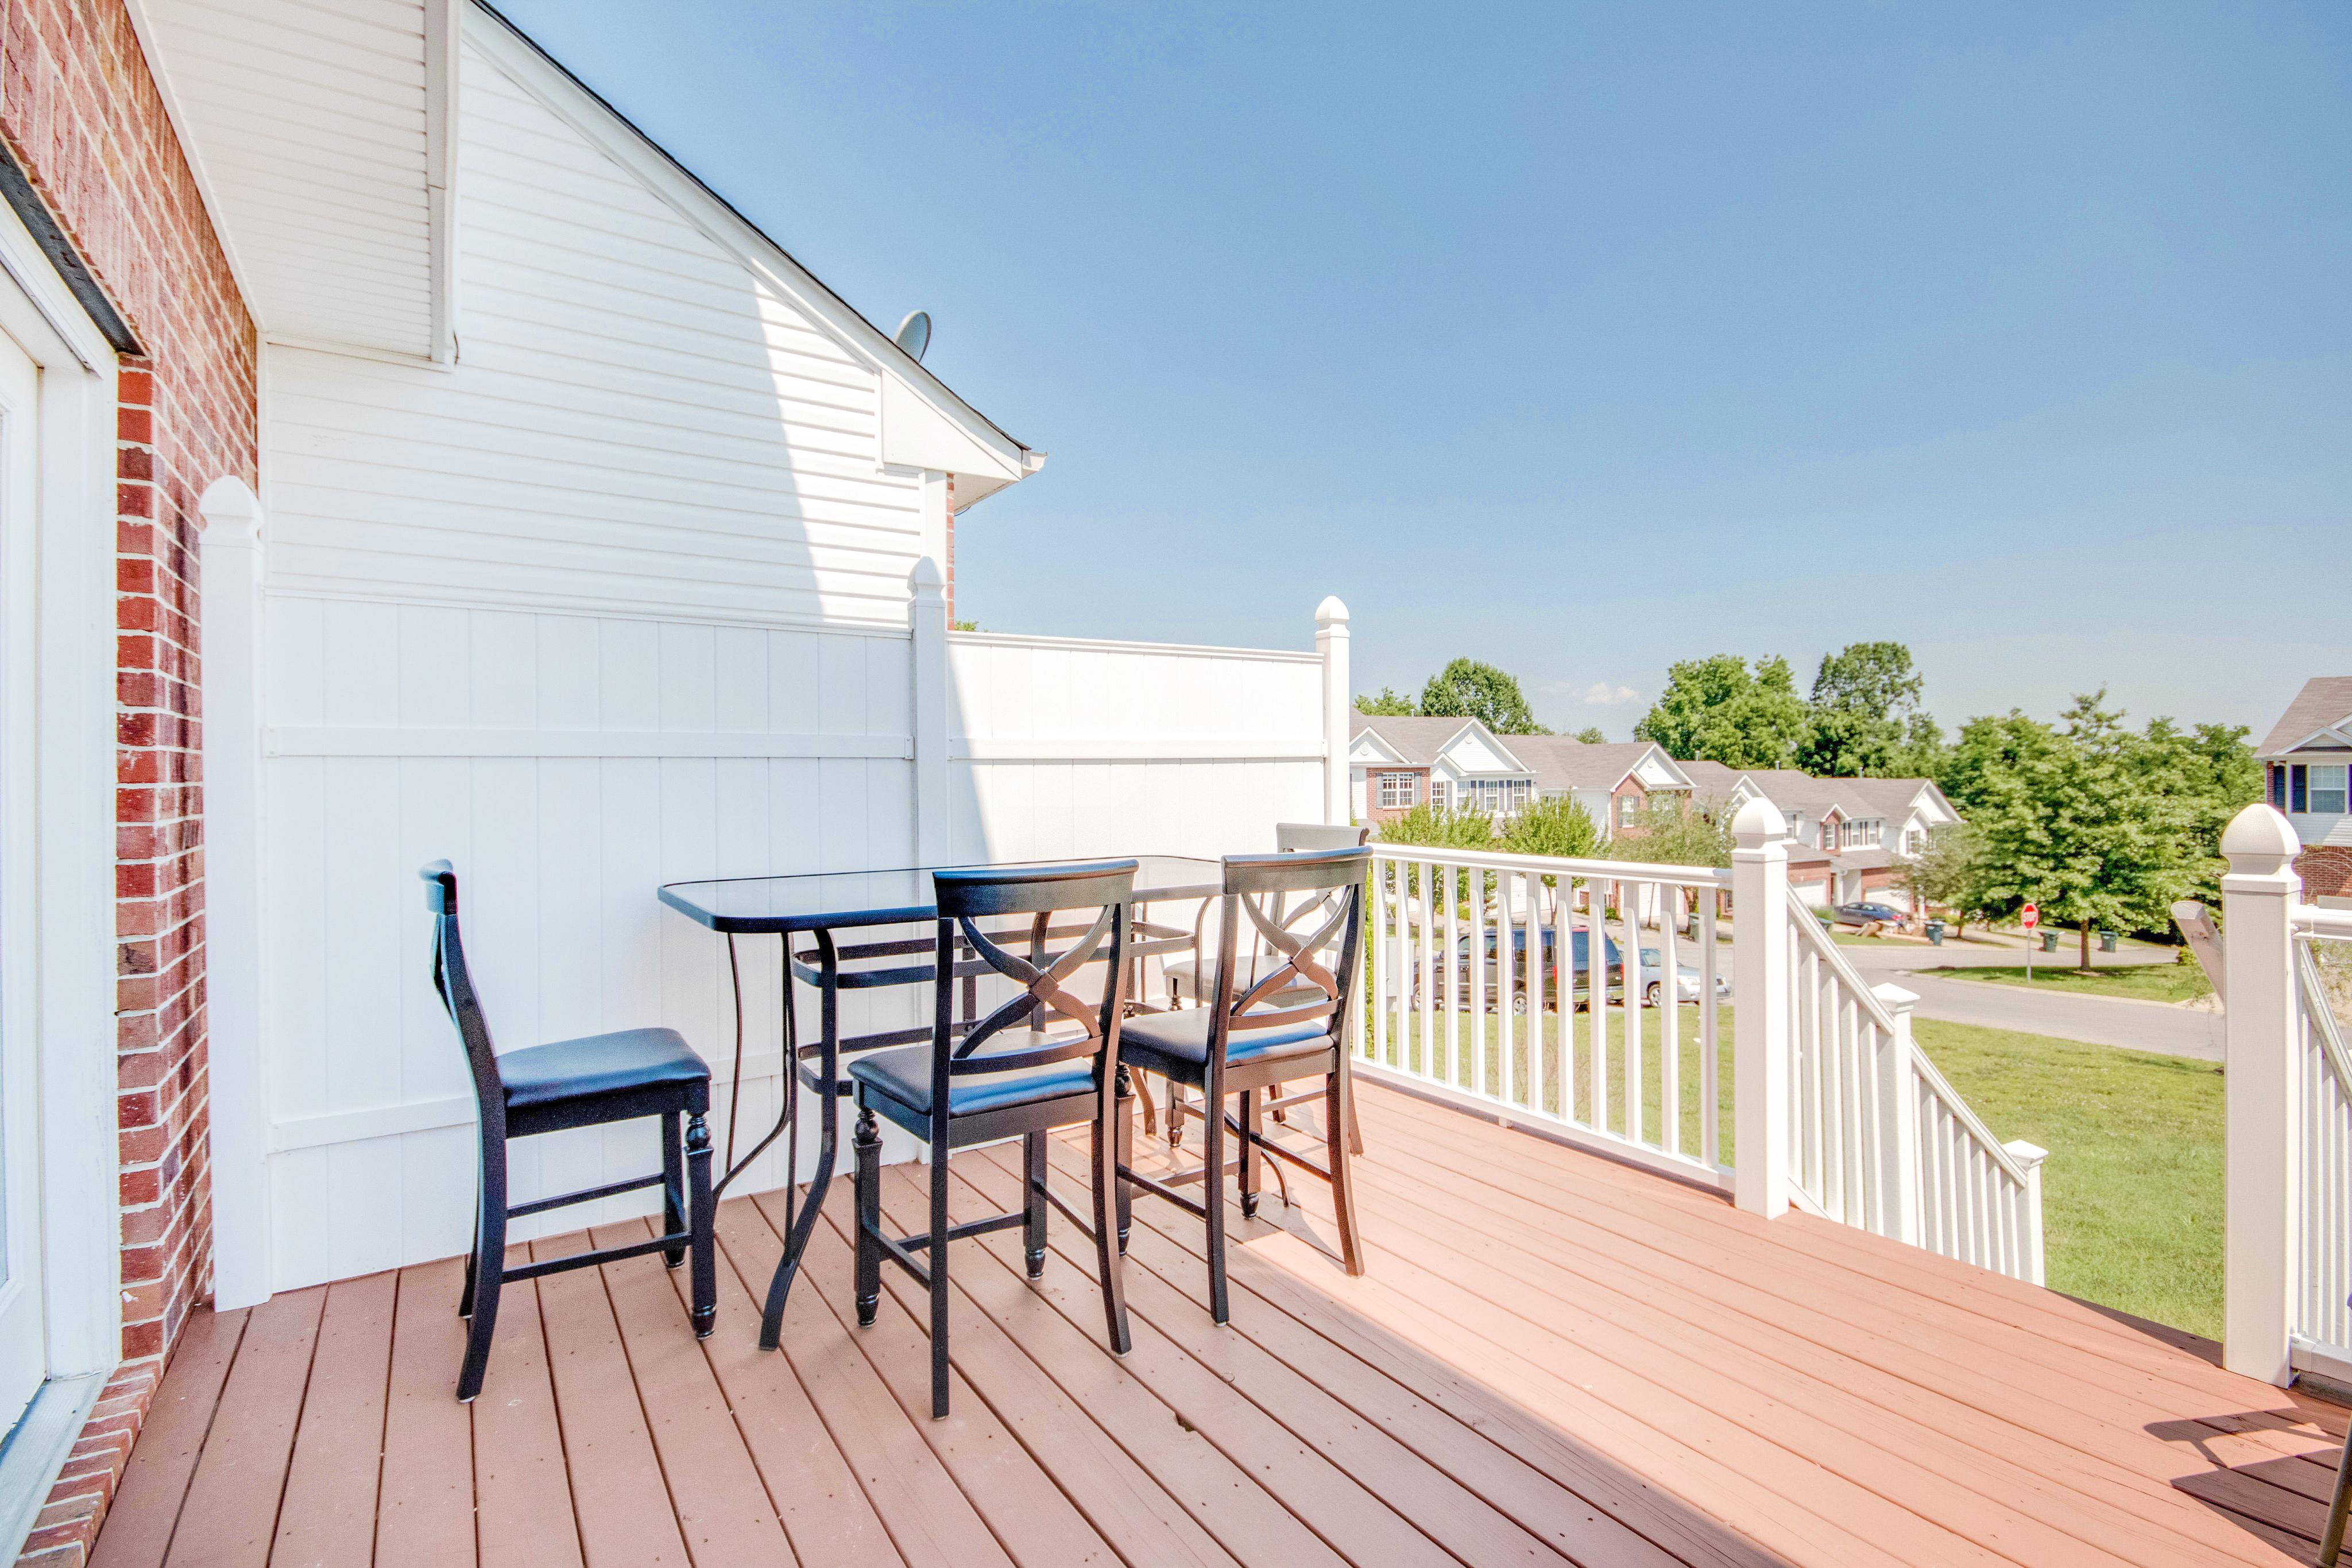 The back deck is the perfect place to enjoy a group meal.